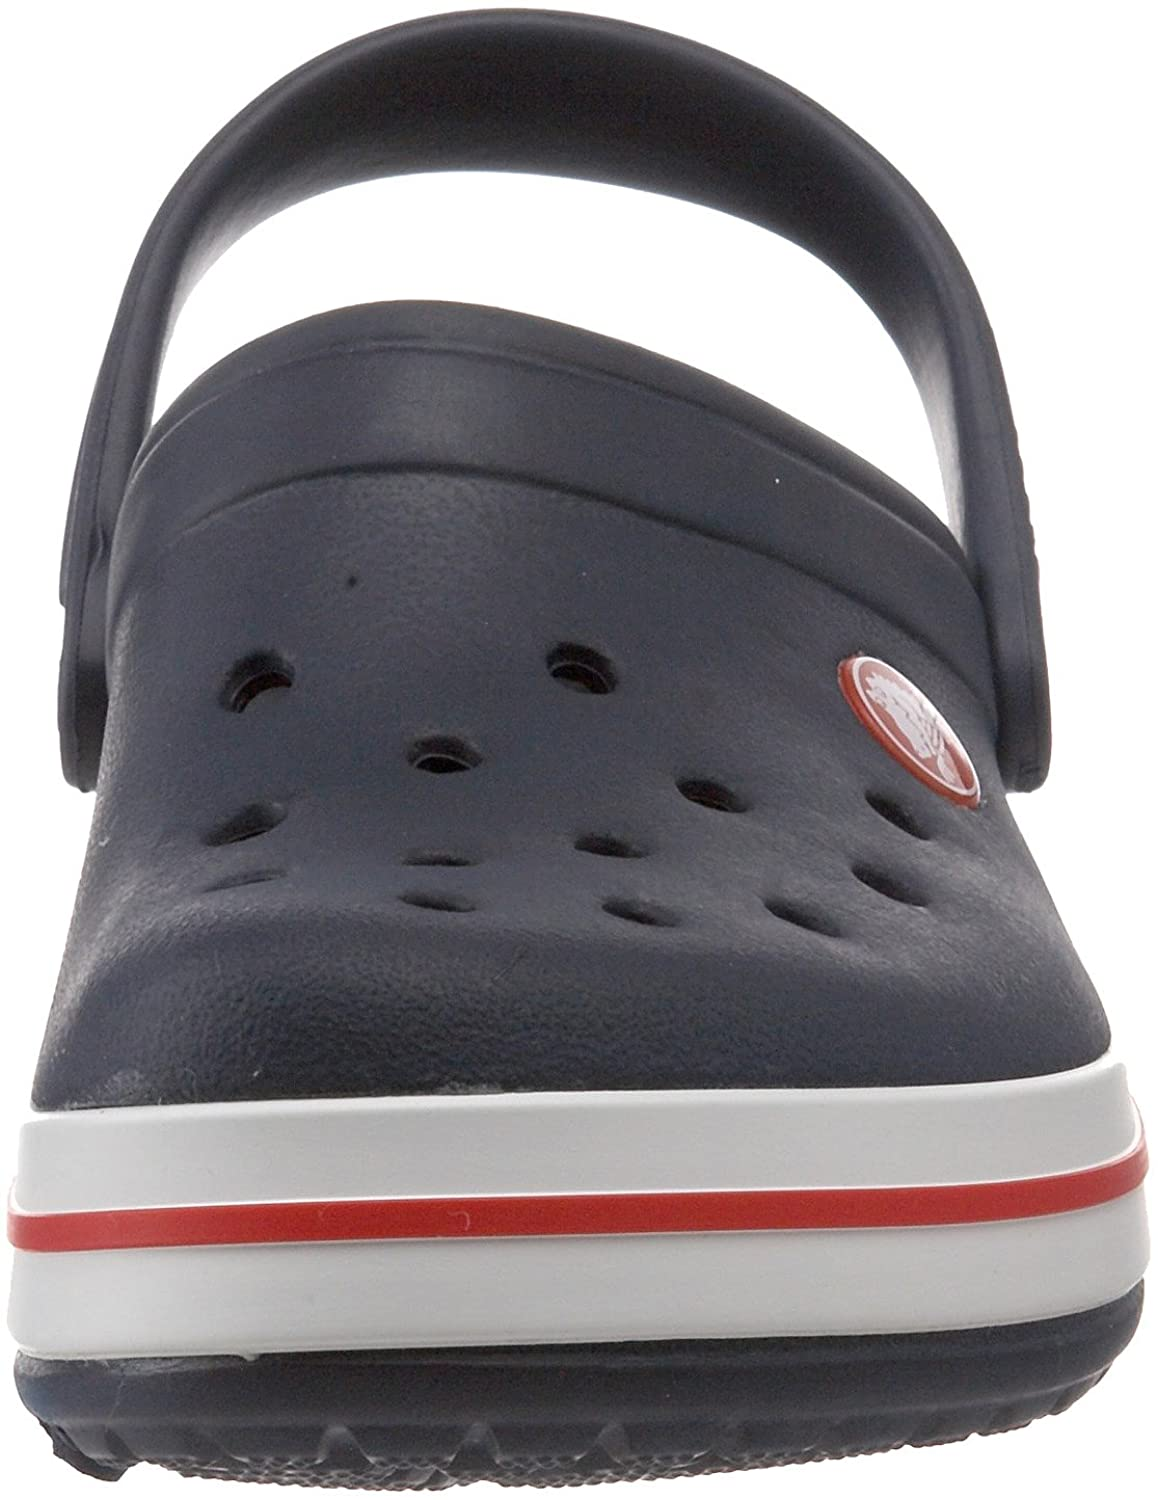 Amazon.com | Crocs Crocband Clog | Clogs & Mules